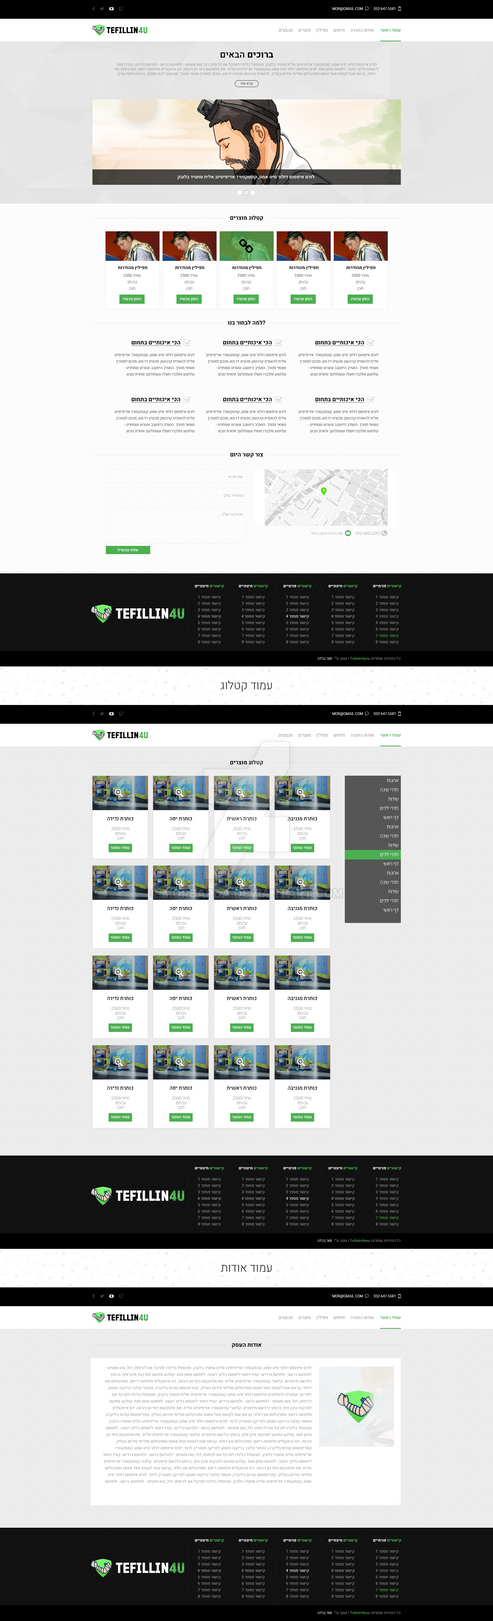 Website Design - Tefillin4you - SOLD by MorBarda